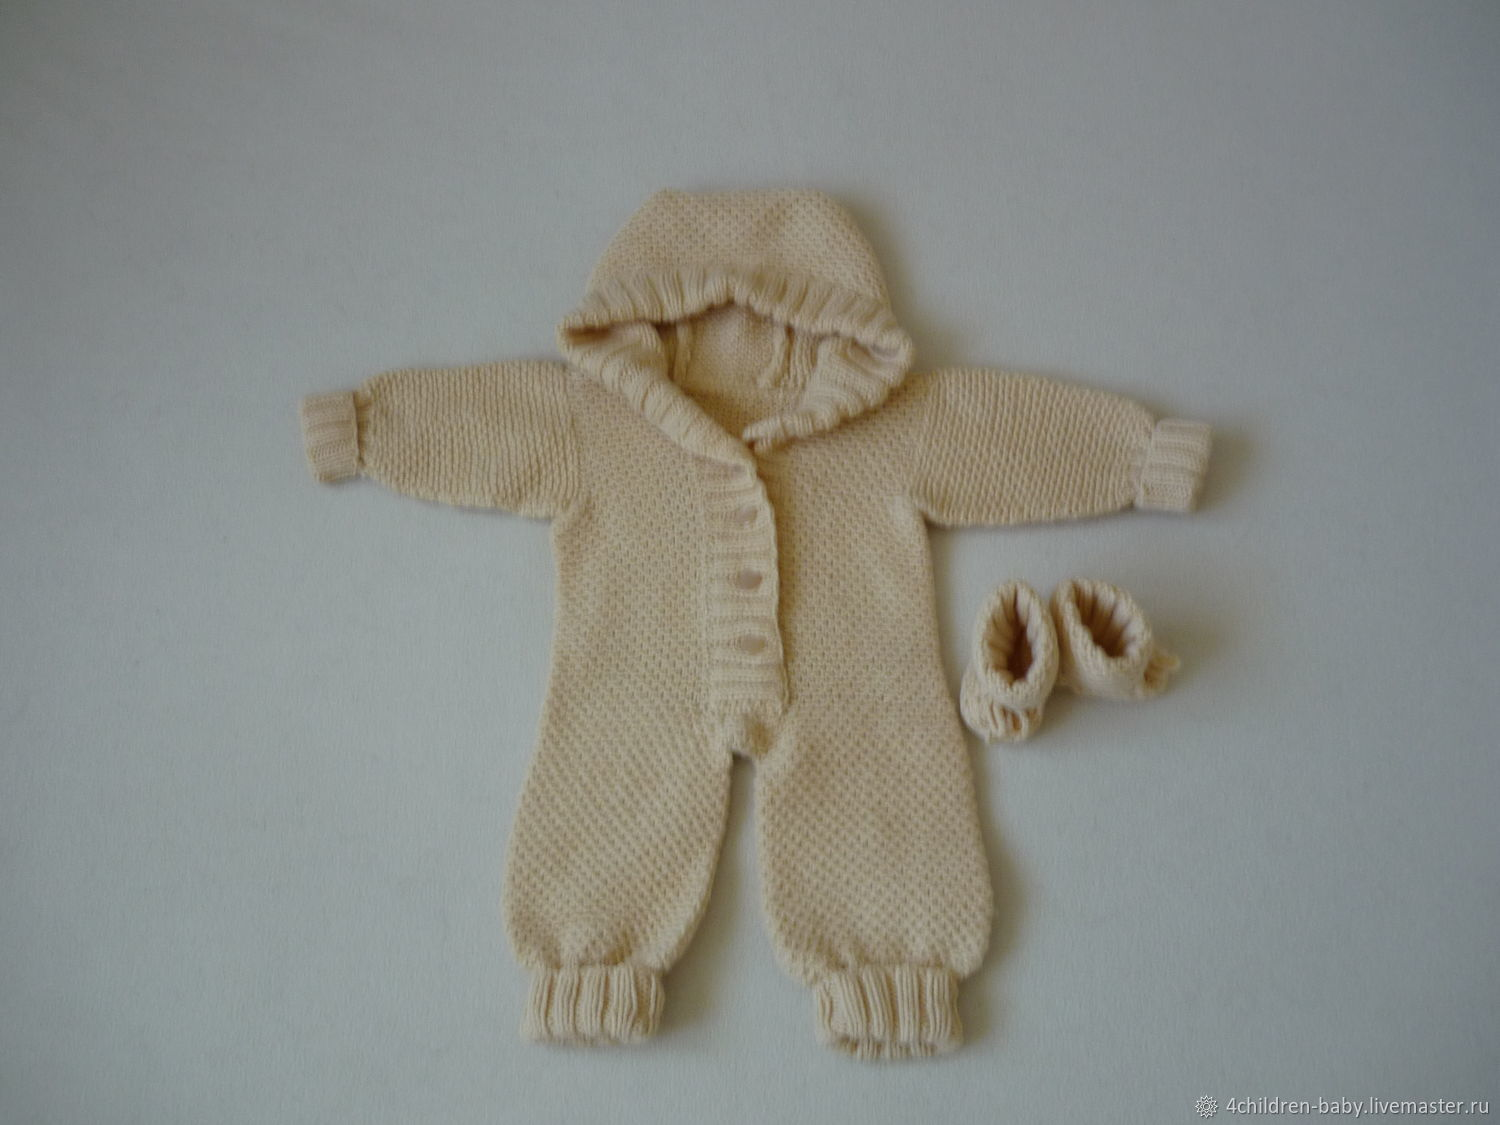 Hand-knitted jumpsuit for girls, Baby Clothing Sets, Moscow,  Фото №1